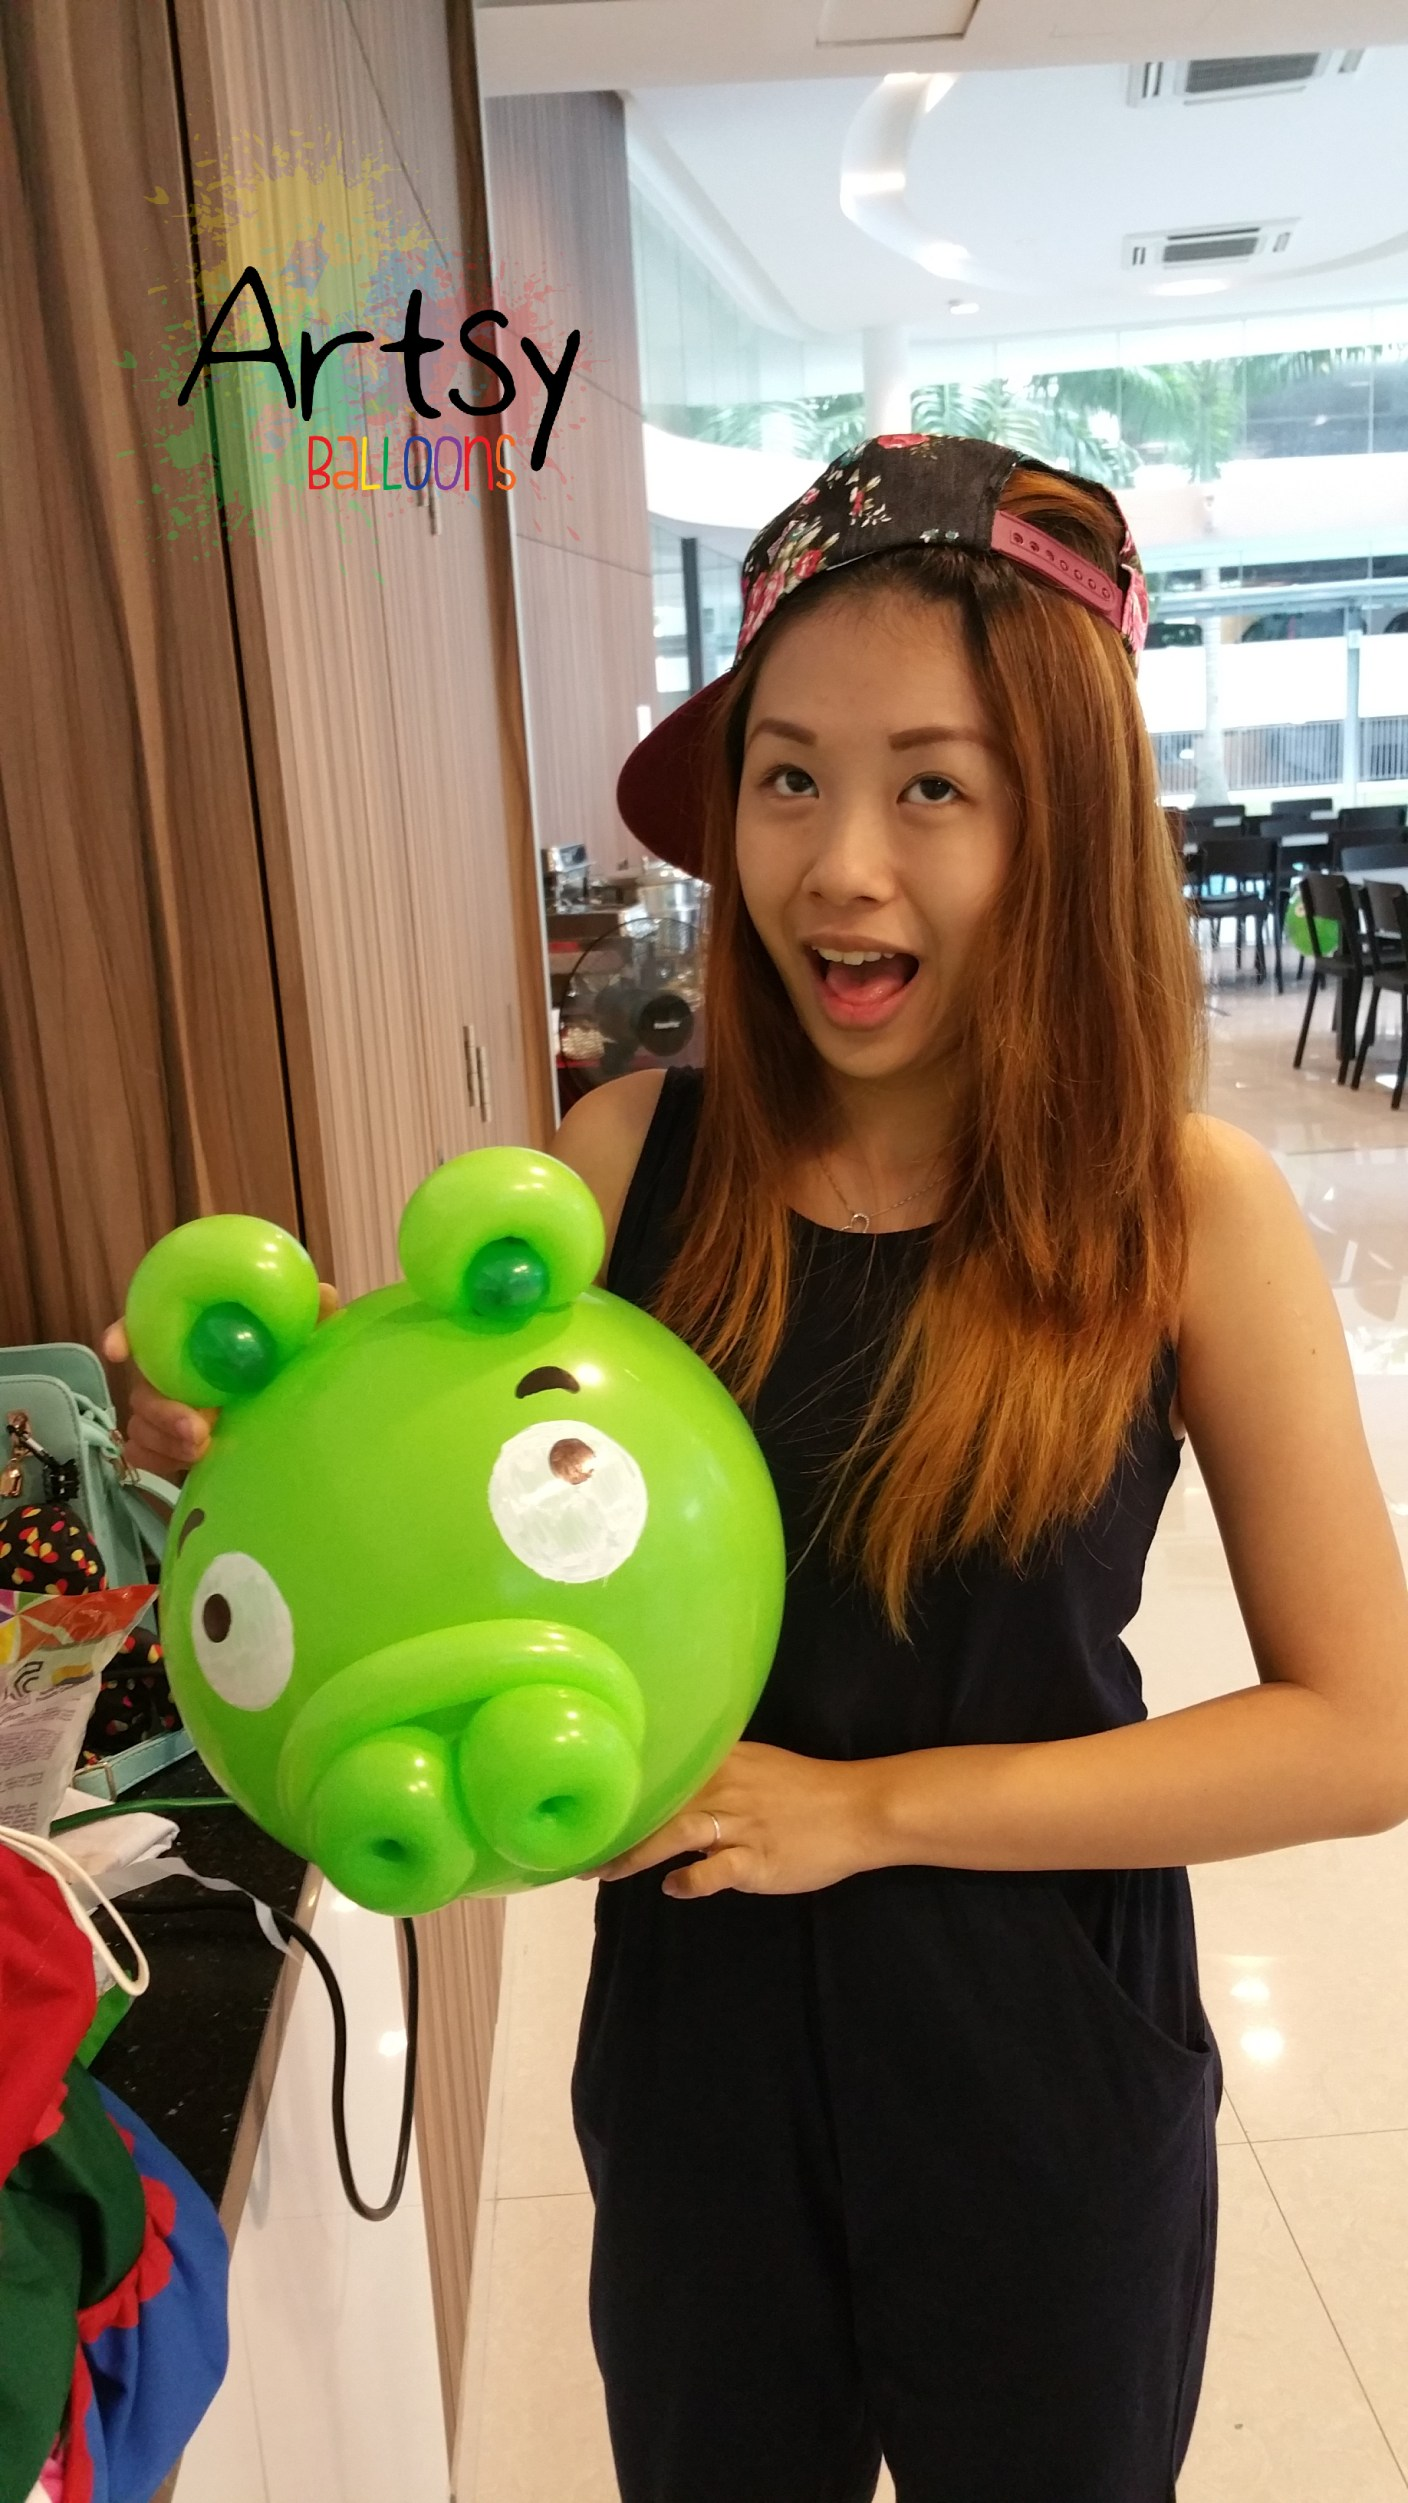 , Minecraft themed balloon sculptures and angry bird balloon decoration!, Singapore Balloon Decoration Services - Balloon Workshop and Balloon Sculpting